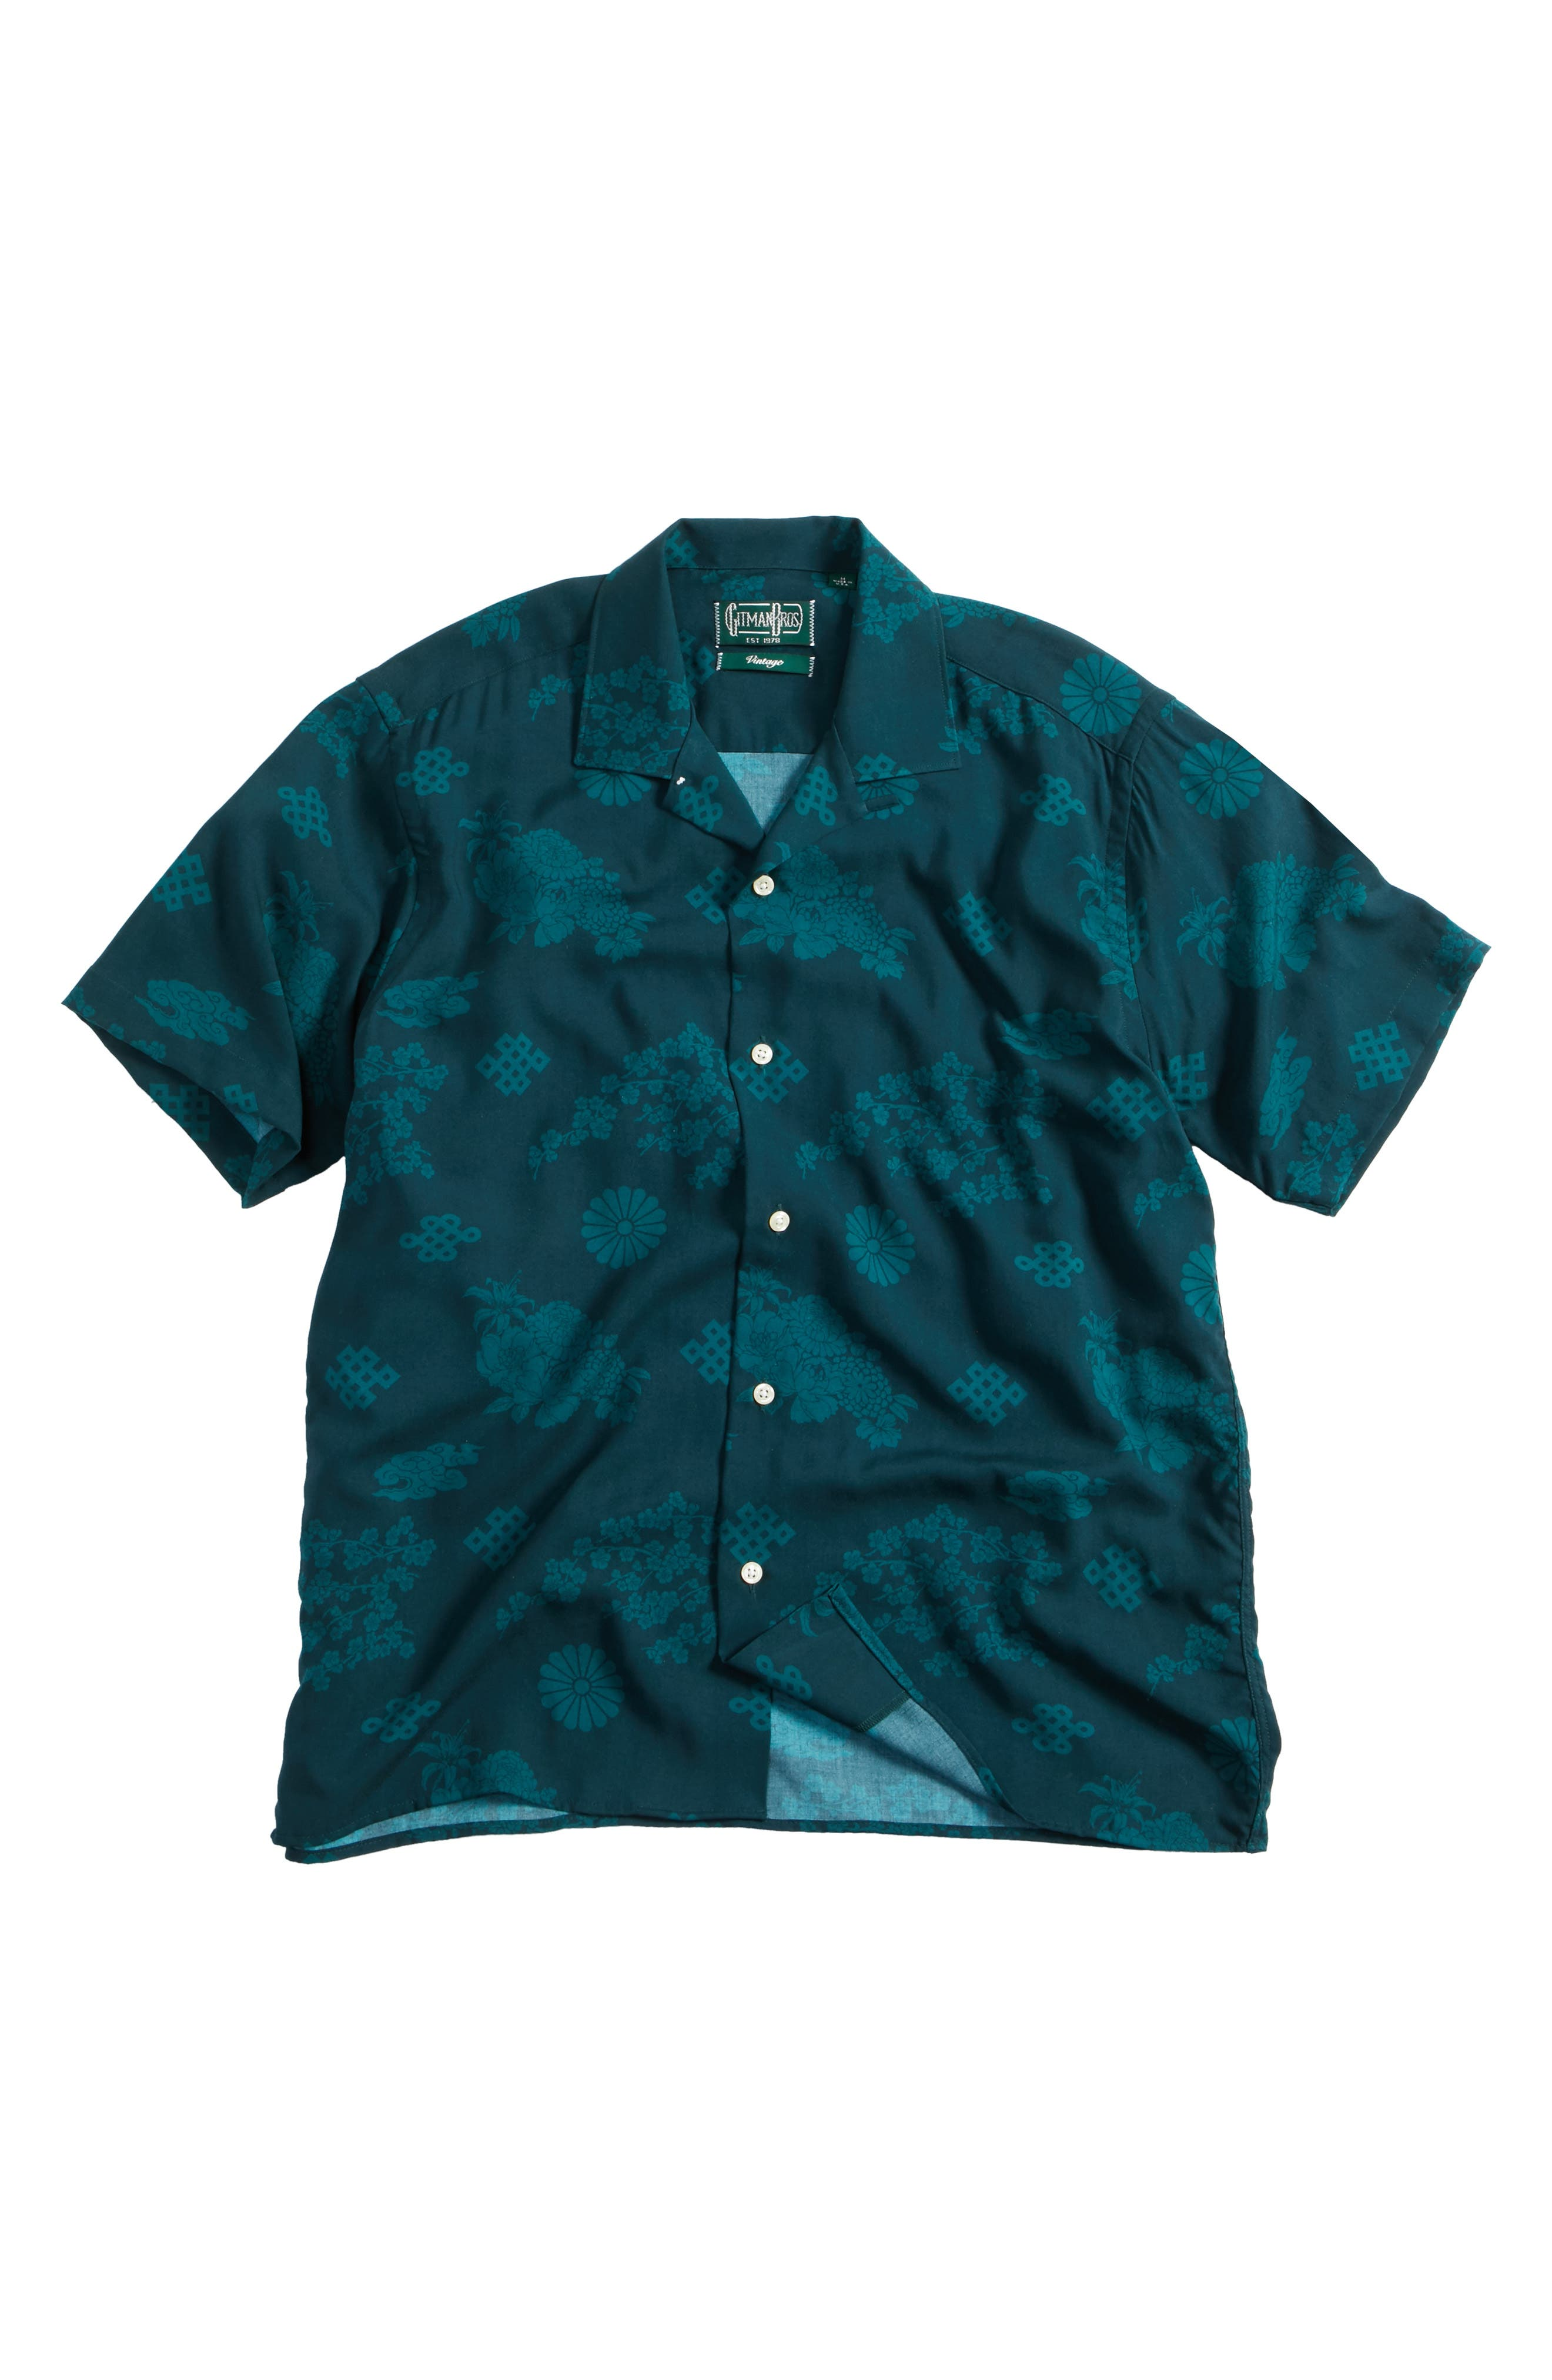 x The North Face Men's Floral Print Camp Shirt,                             Main thumbnail 1, color,                             Green Ground